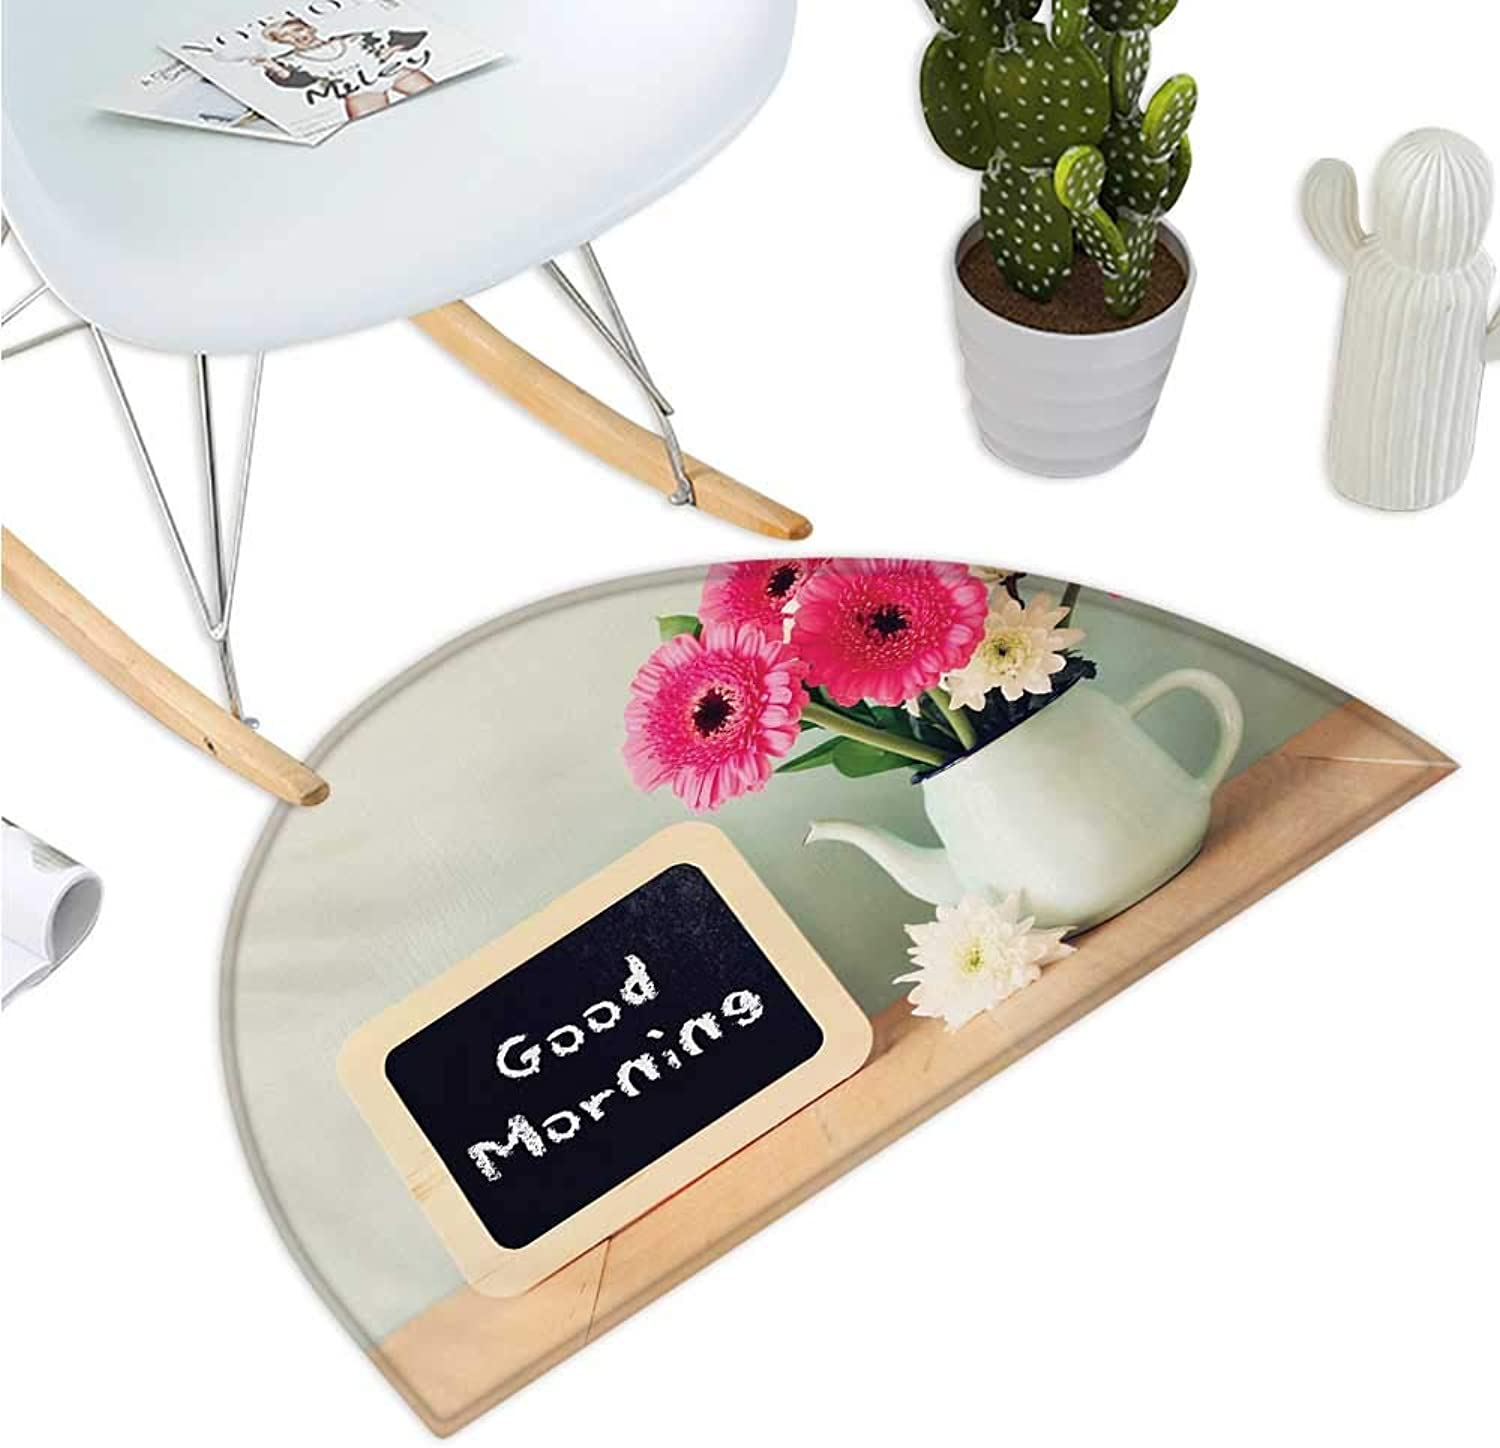 Quote Semicircular Cushion Blackboard with The Phrase Good Morning Written on It Next to Vase with Fresh Flowers Halfmoon doormats H 39.3  xD 59  Multicolor